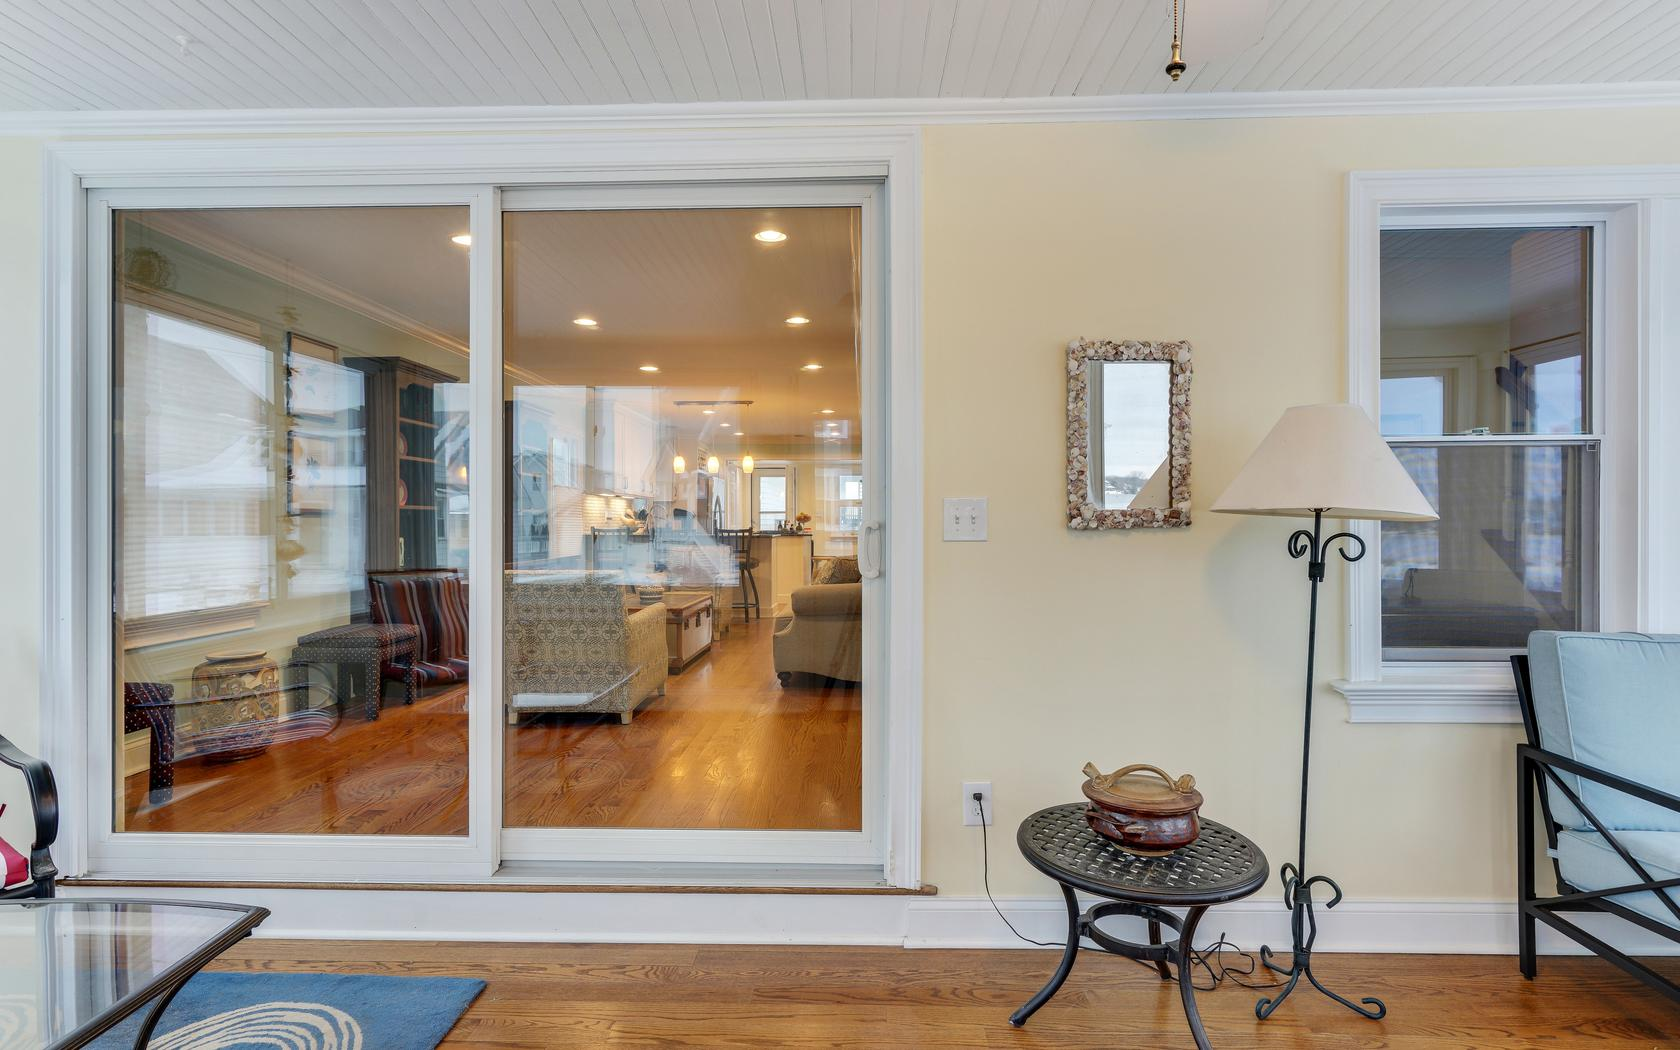 Additional photo for property listing at Perfect Beach Home 2006 Surf Avenue Belmar, Nueva Jersey 07719 Estados Unidos